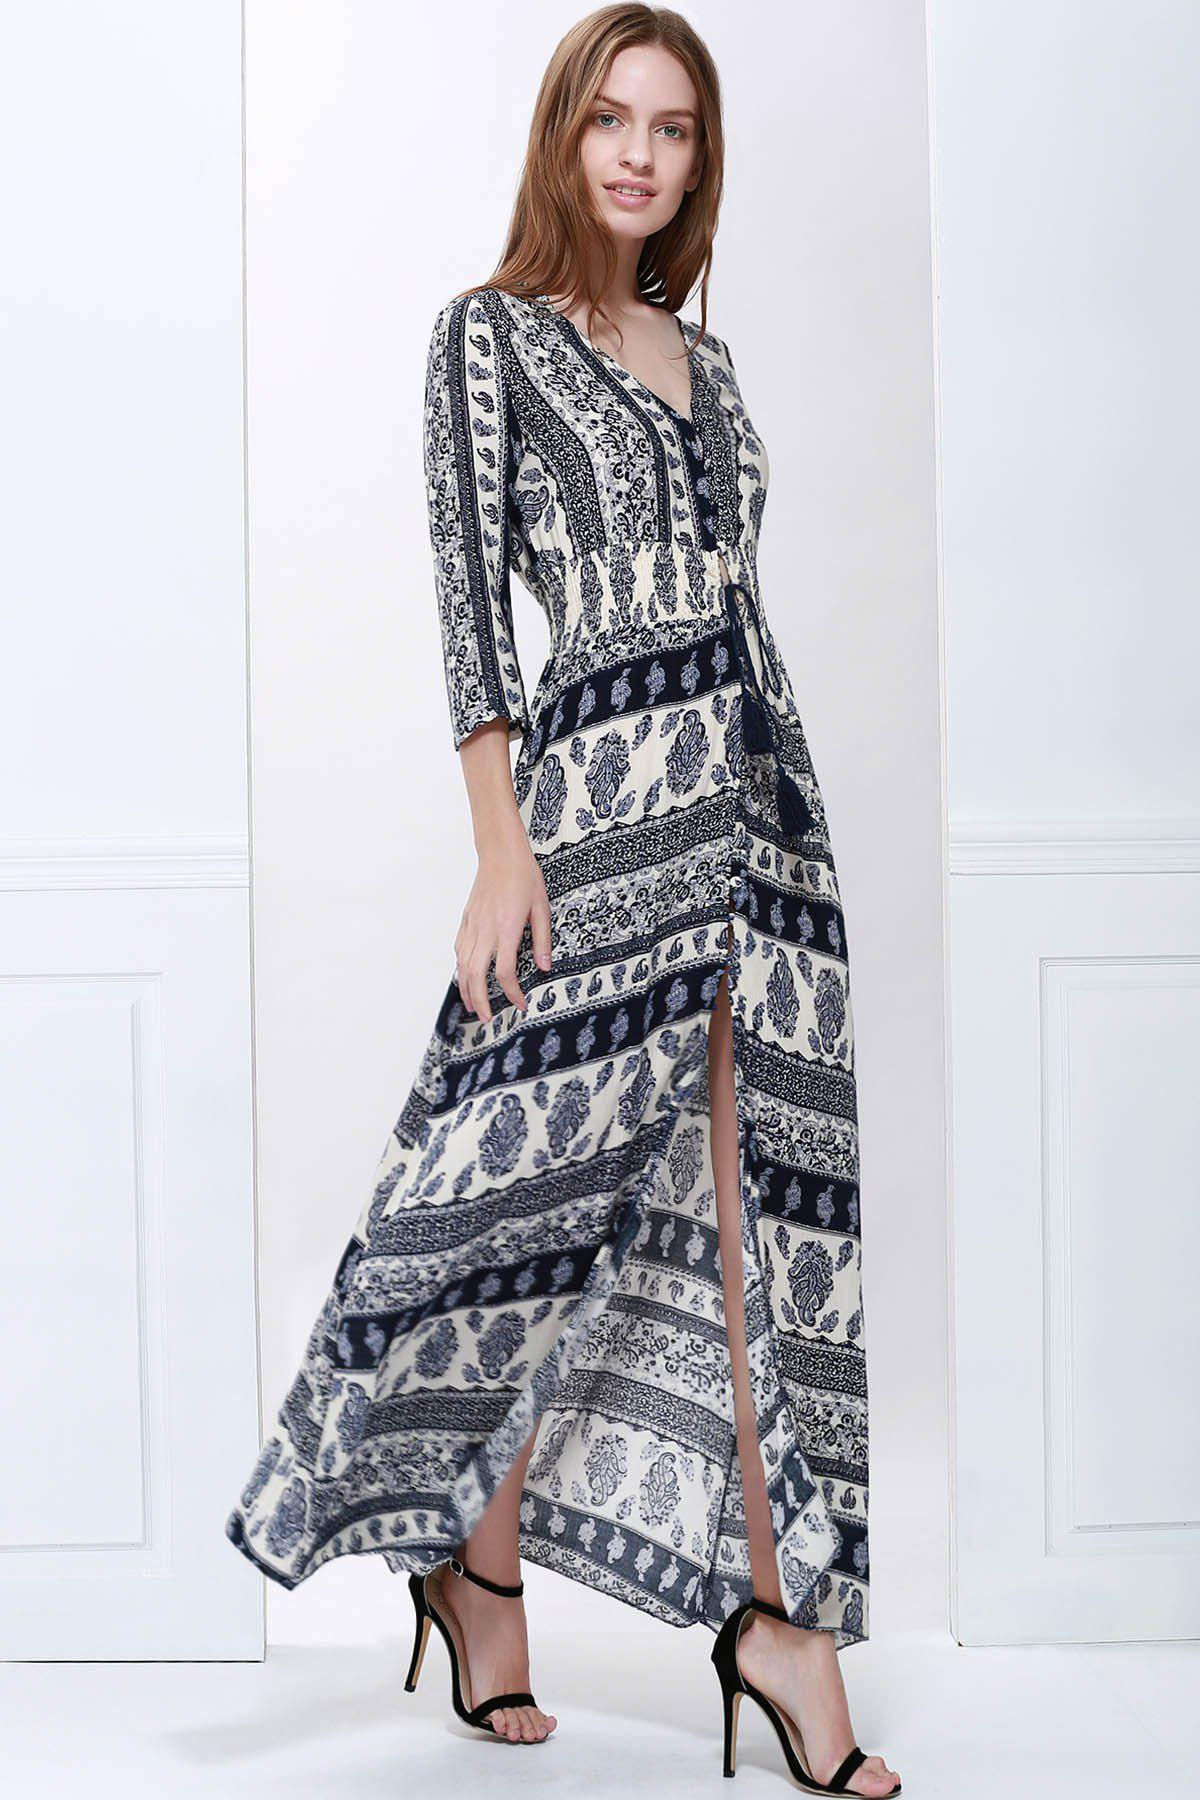 3d7e6974c856 59% OFF] Bohemian Plunging Neck 3/4 Sleeve Printed Women's Maxi ...